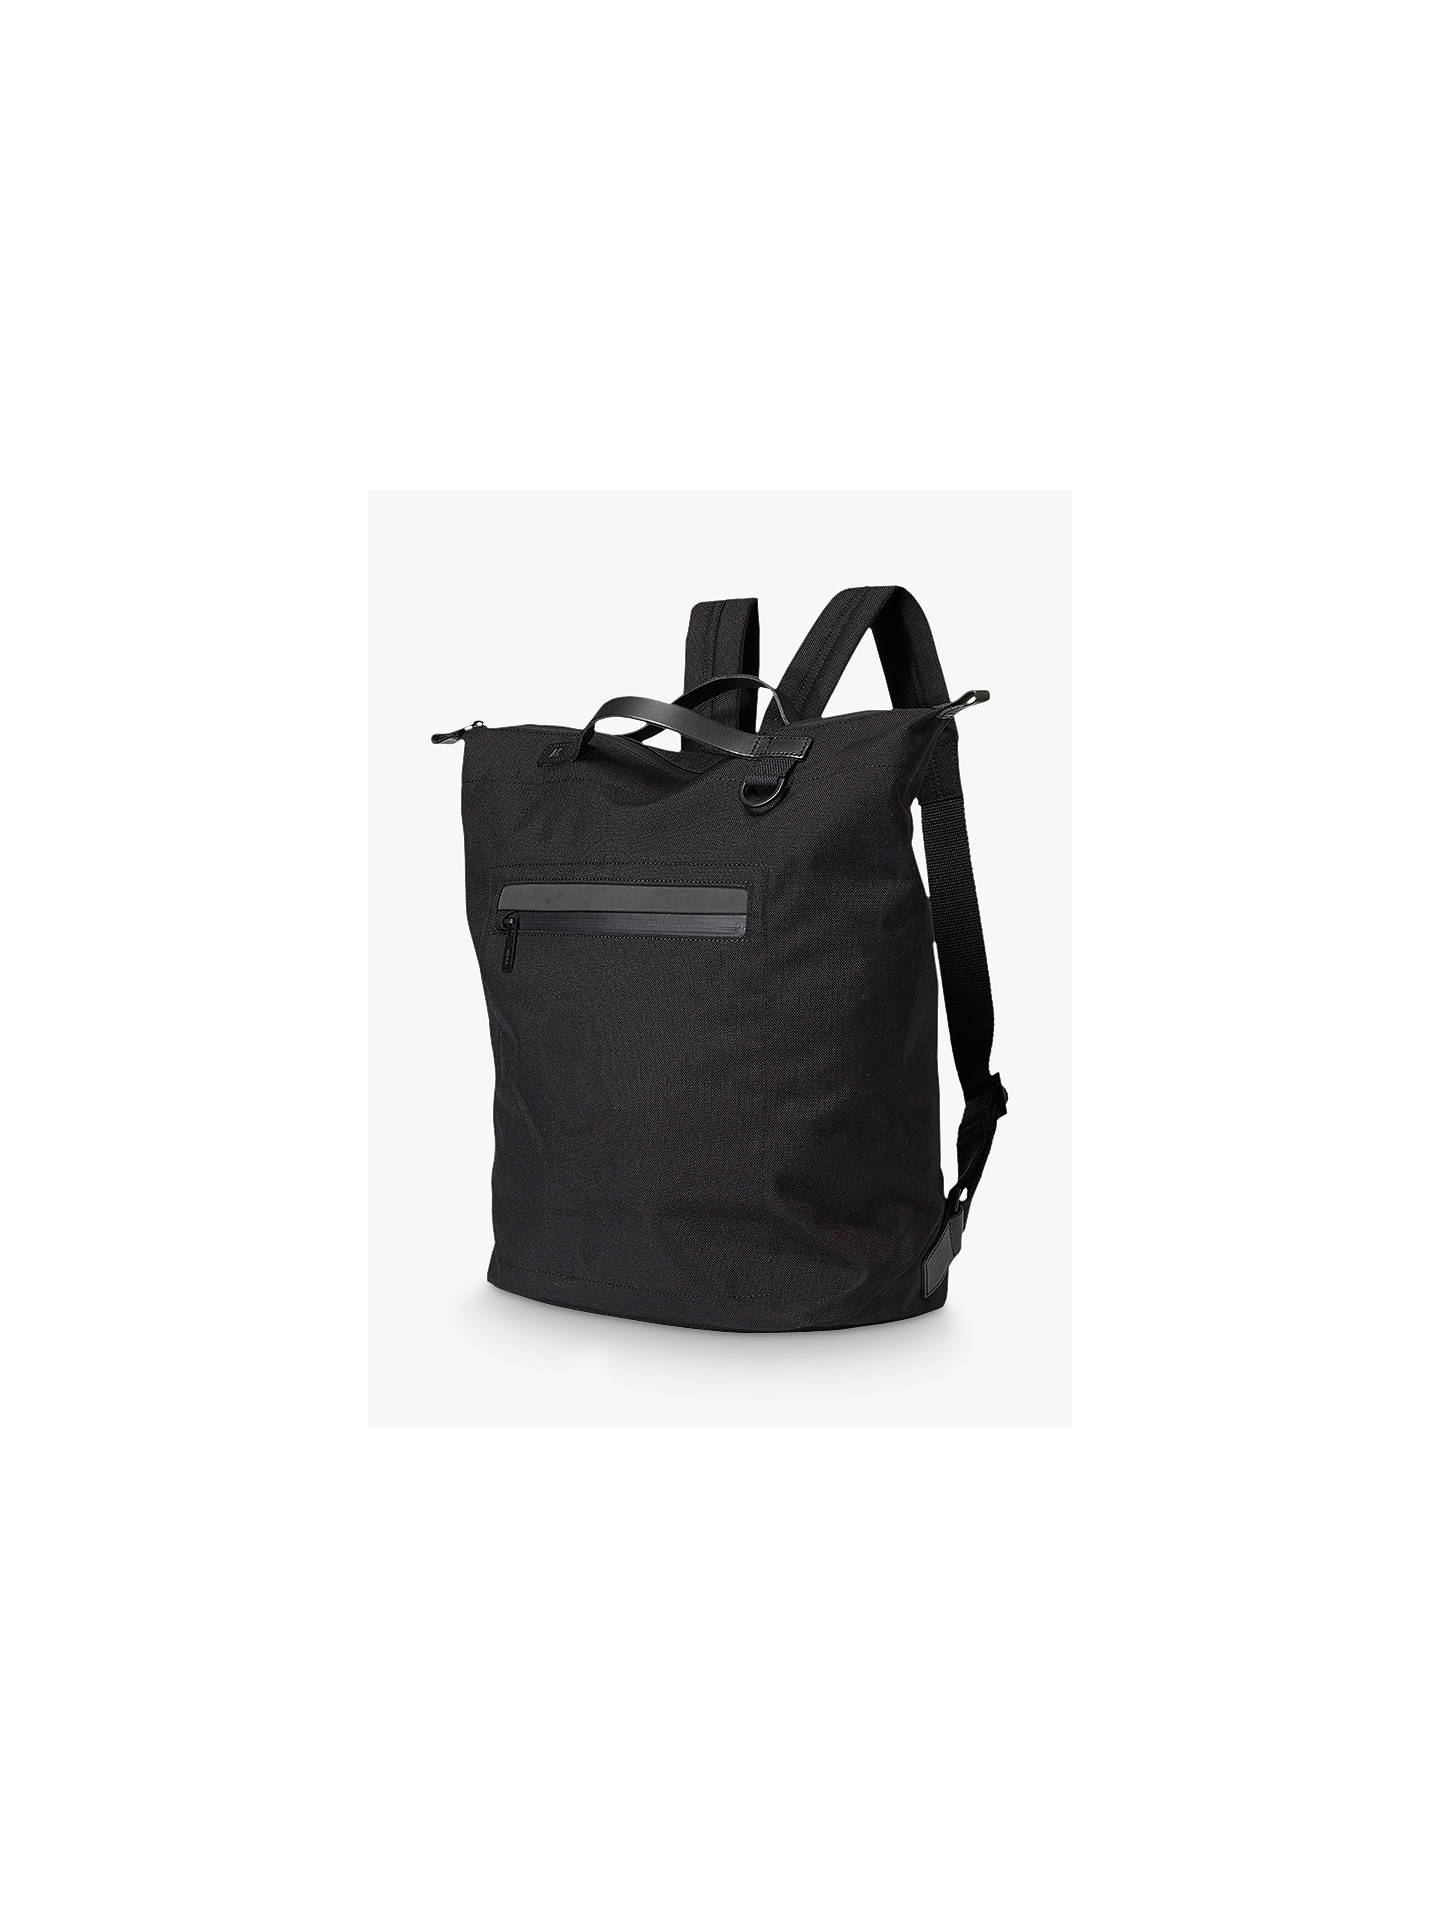 Buy Ally Capellino Hoy Travel Cycle Backpack, Black Online at johnlewis.com